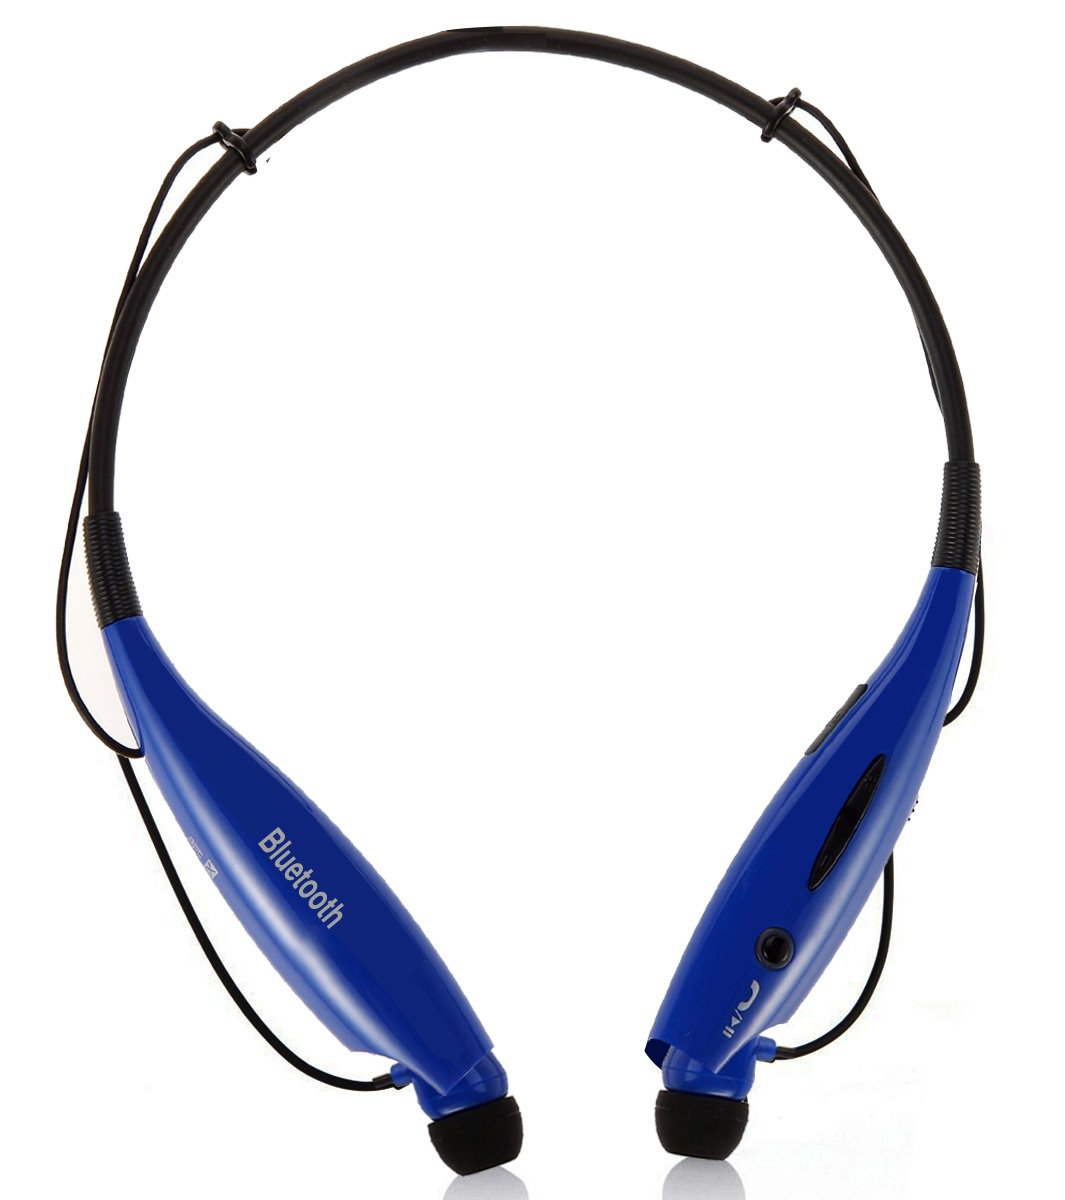 Universal Bluetooth Neckband Headphones S Gear -HV-Digitial 800 Wireless Headset Sweatproof Running Gym Exercise Stereo Earphones Noise Cancelling Earbuds Cordless DARKBLUE